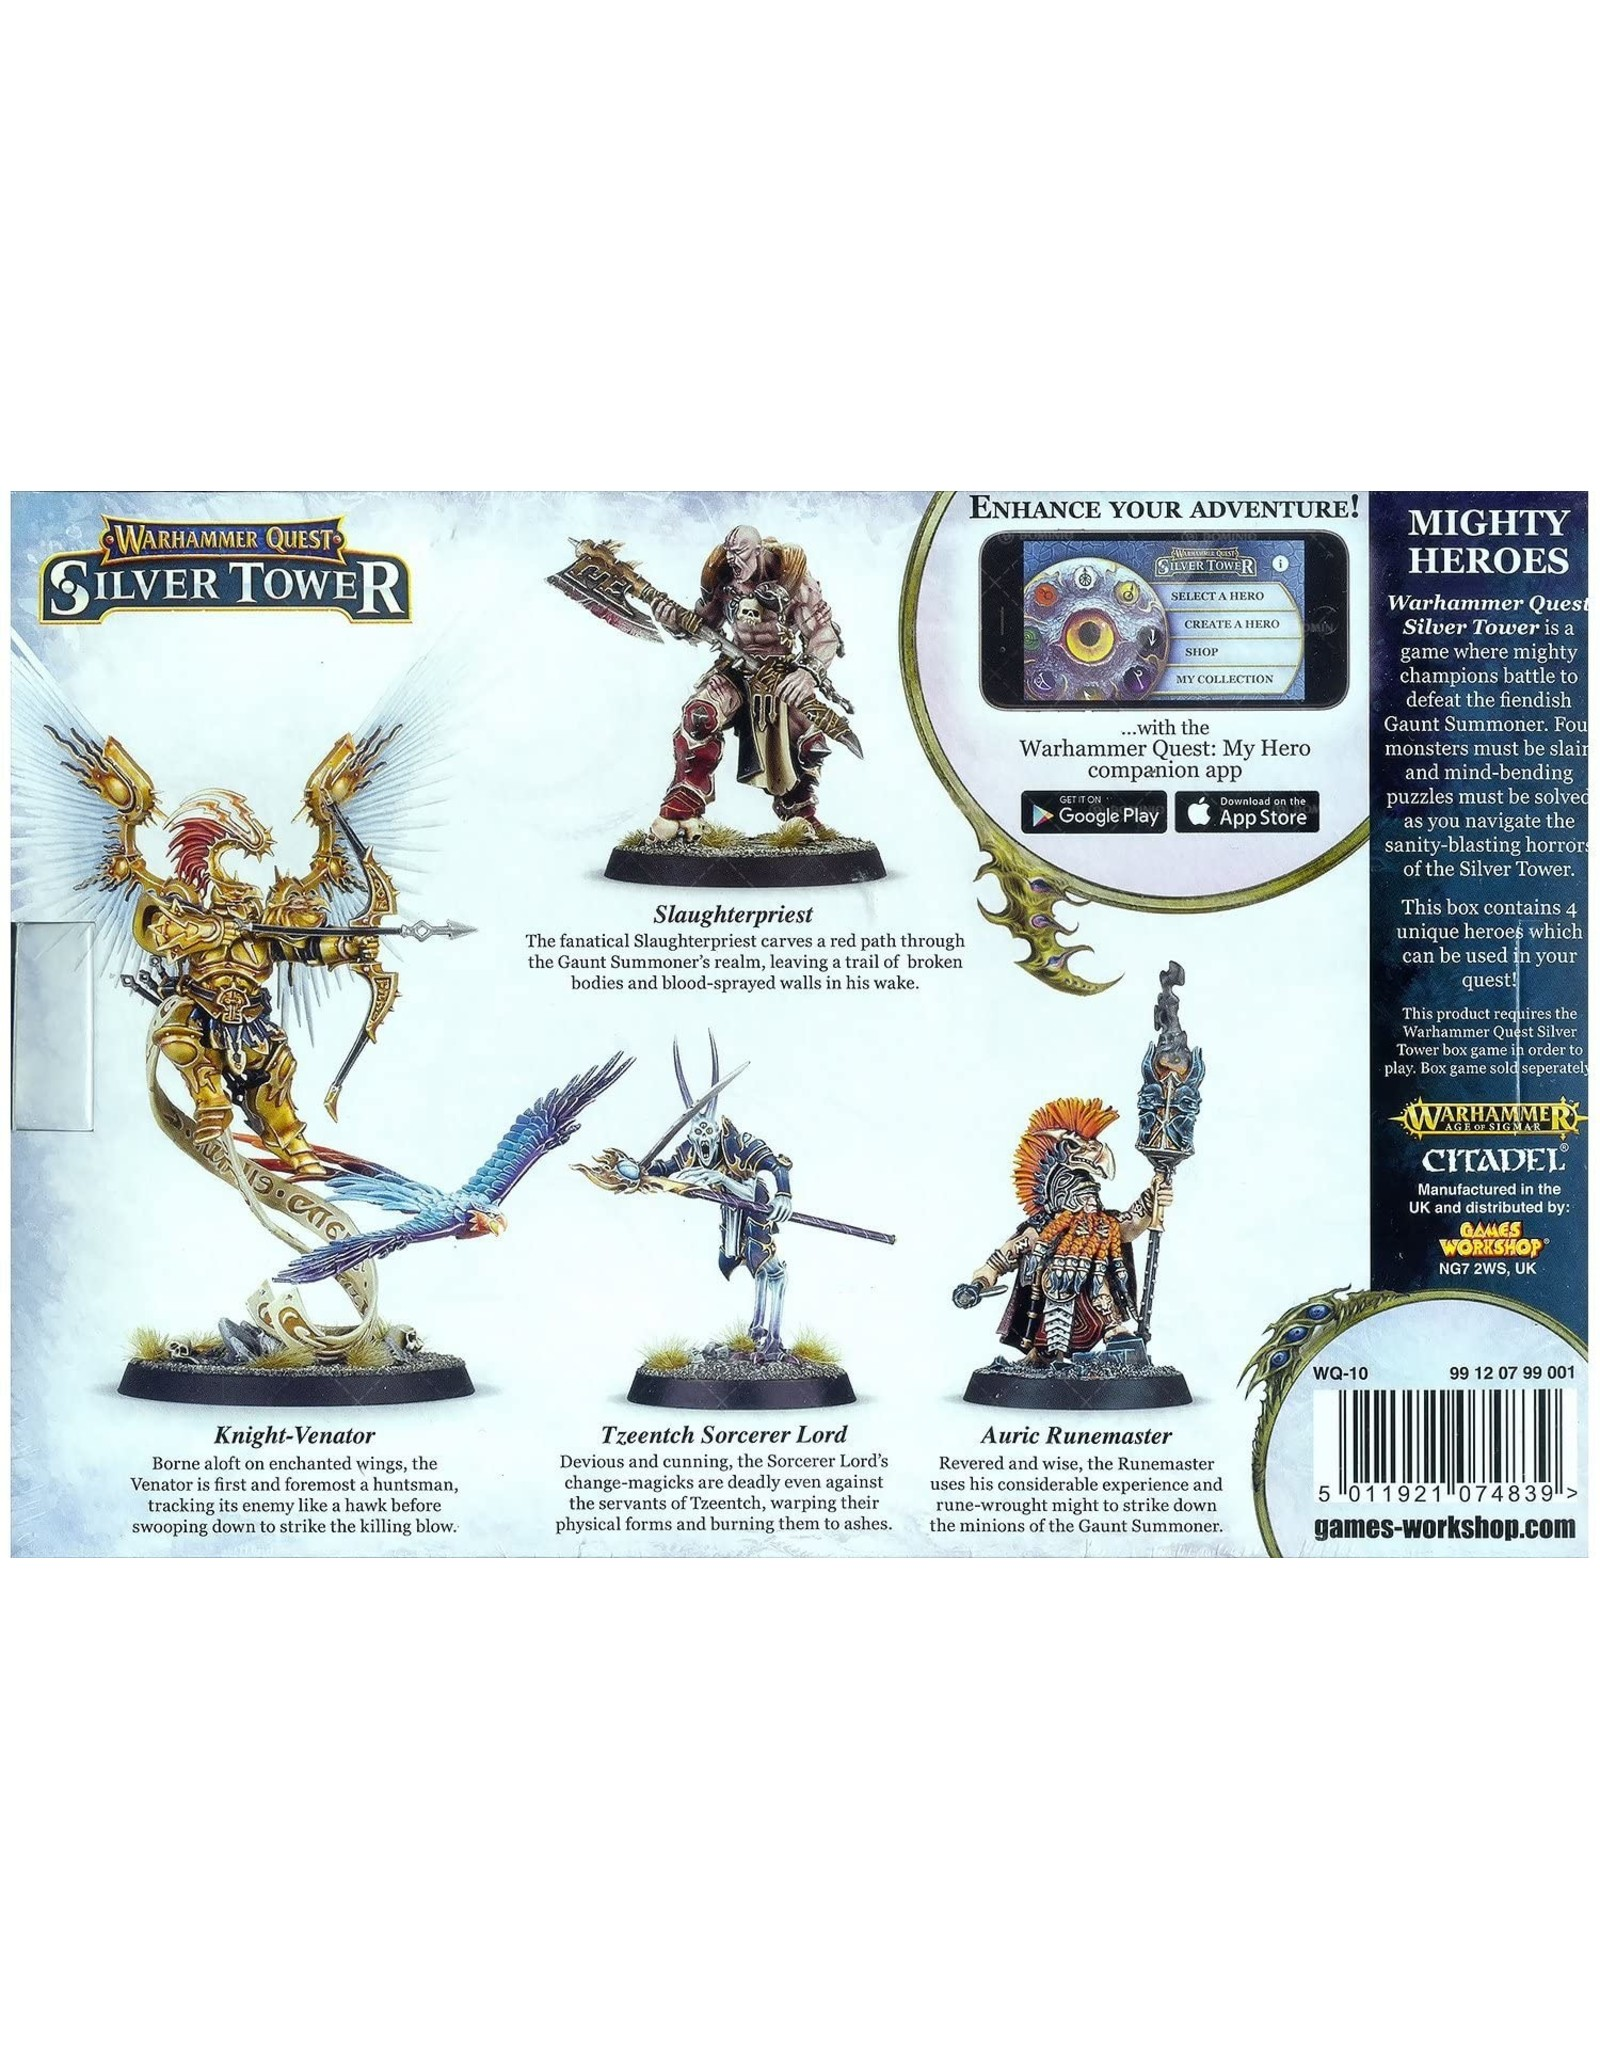 Warhammer Age of Sigmar: Warhammer Quest - Silver Tower Mighty Heroes